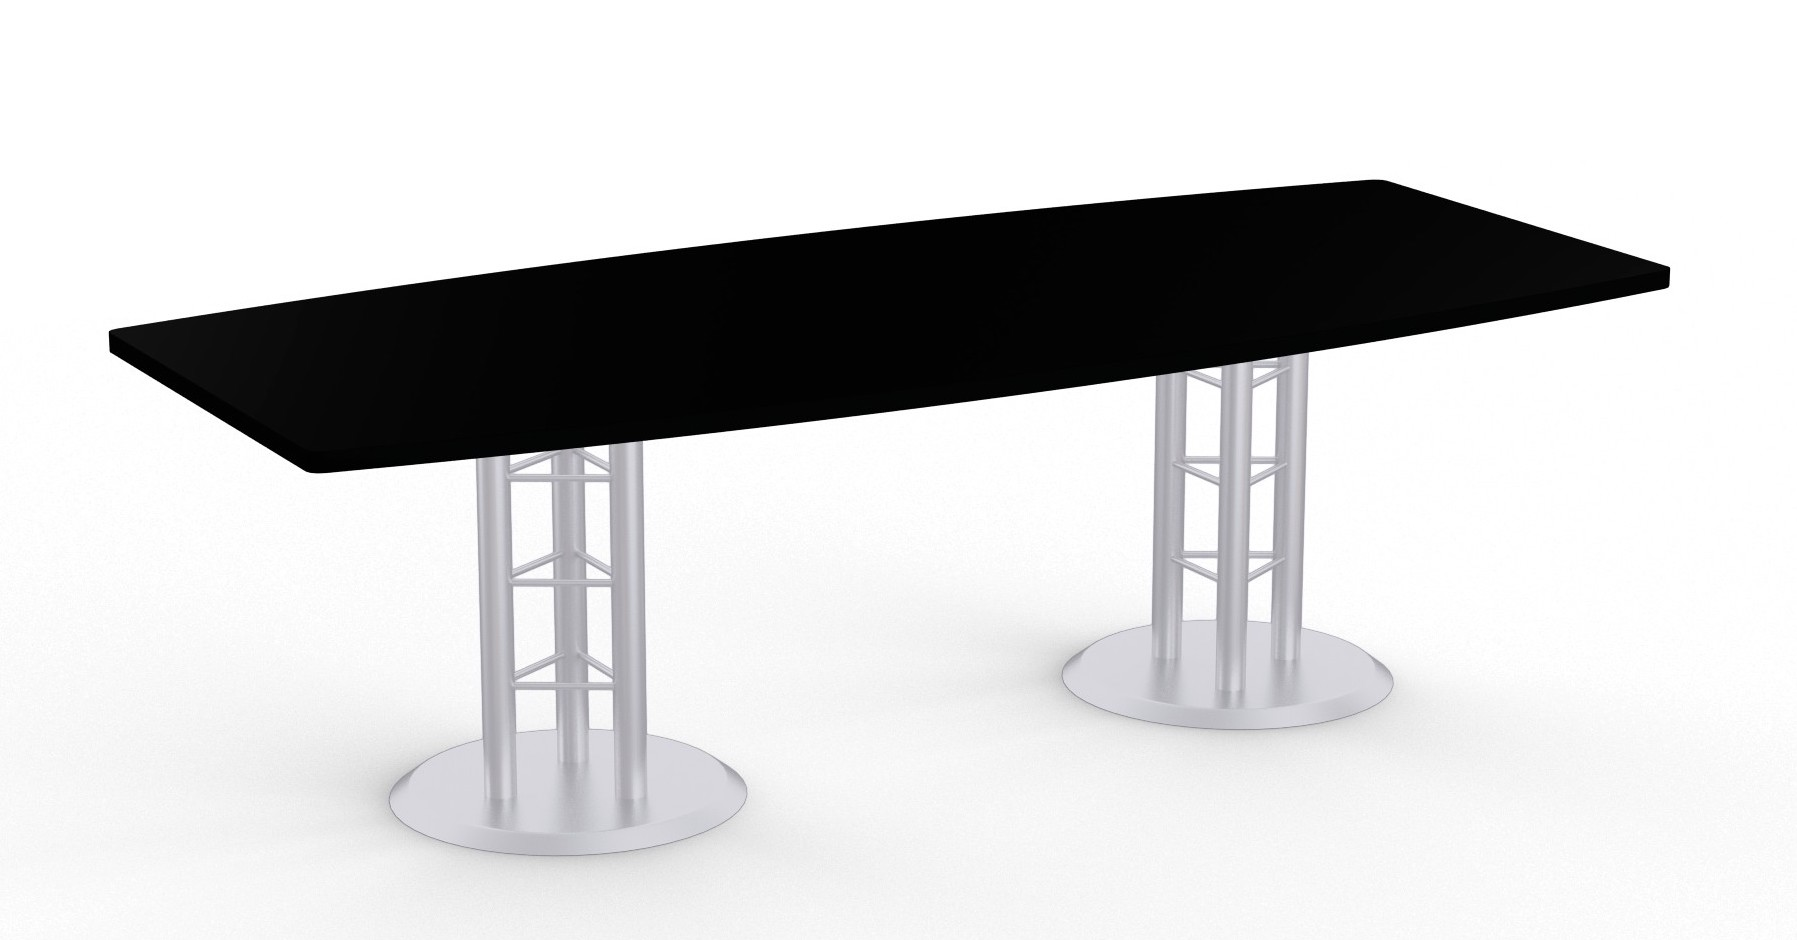 atlantis boat shaped table in black